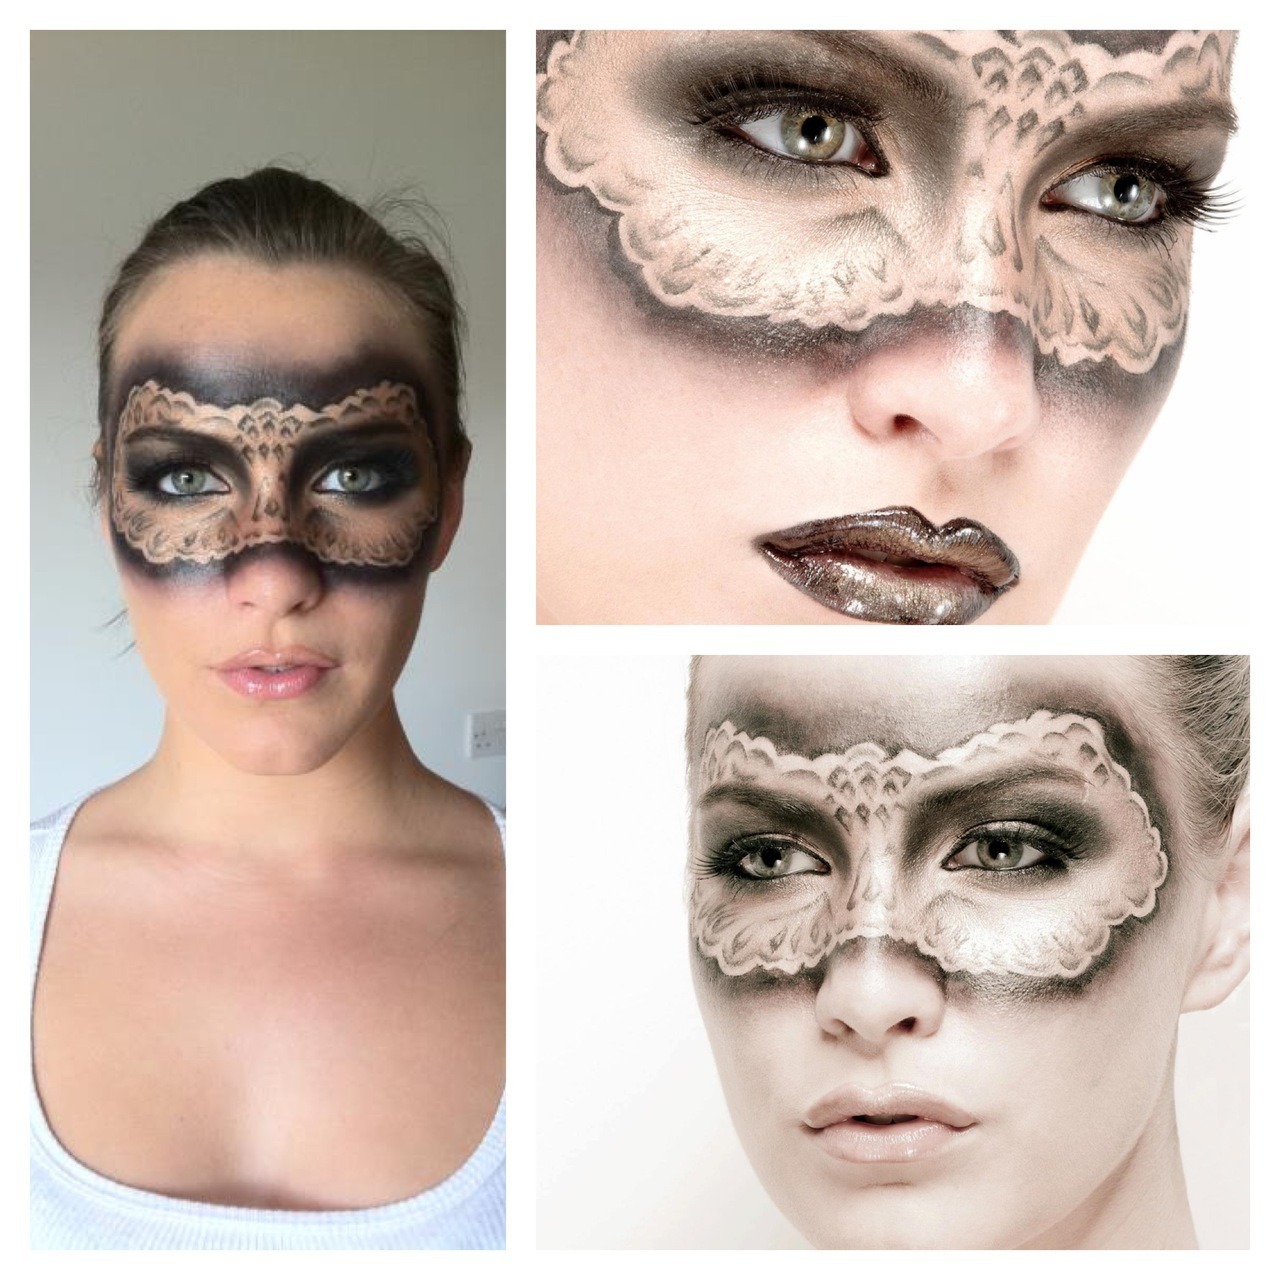 "Another behind the scenes makeup image - Masquerade makeup! This look took me around 1.5hrs to complete. I hadn't practiced this look before, I just decided to freehand it on a whim. I was really pleased with the result. I used cheap brand makeup for this look so it's definitely a ""Do it at home"" one you can recreate! Look at my past blog posts for a step-by-step guide on how to get this look!"